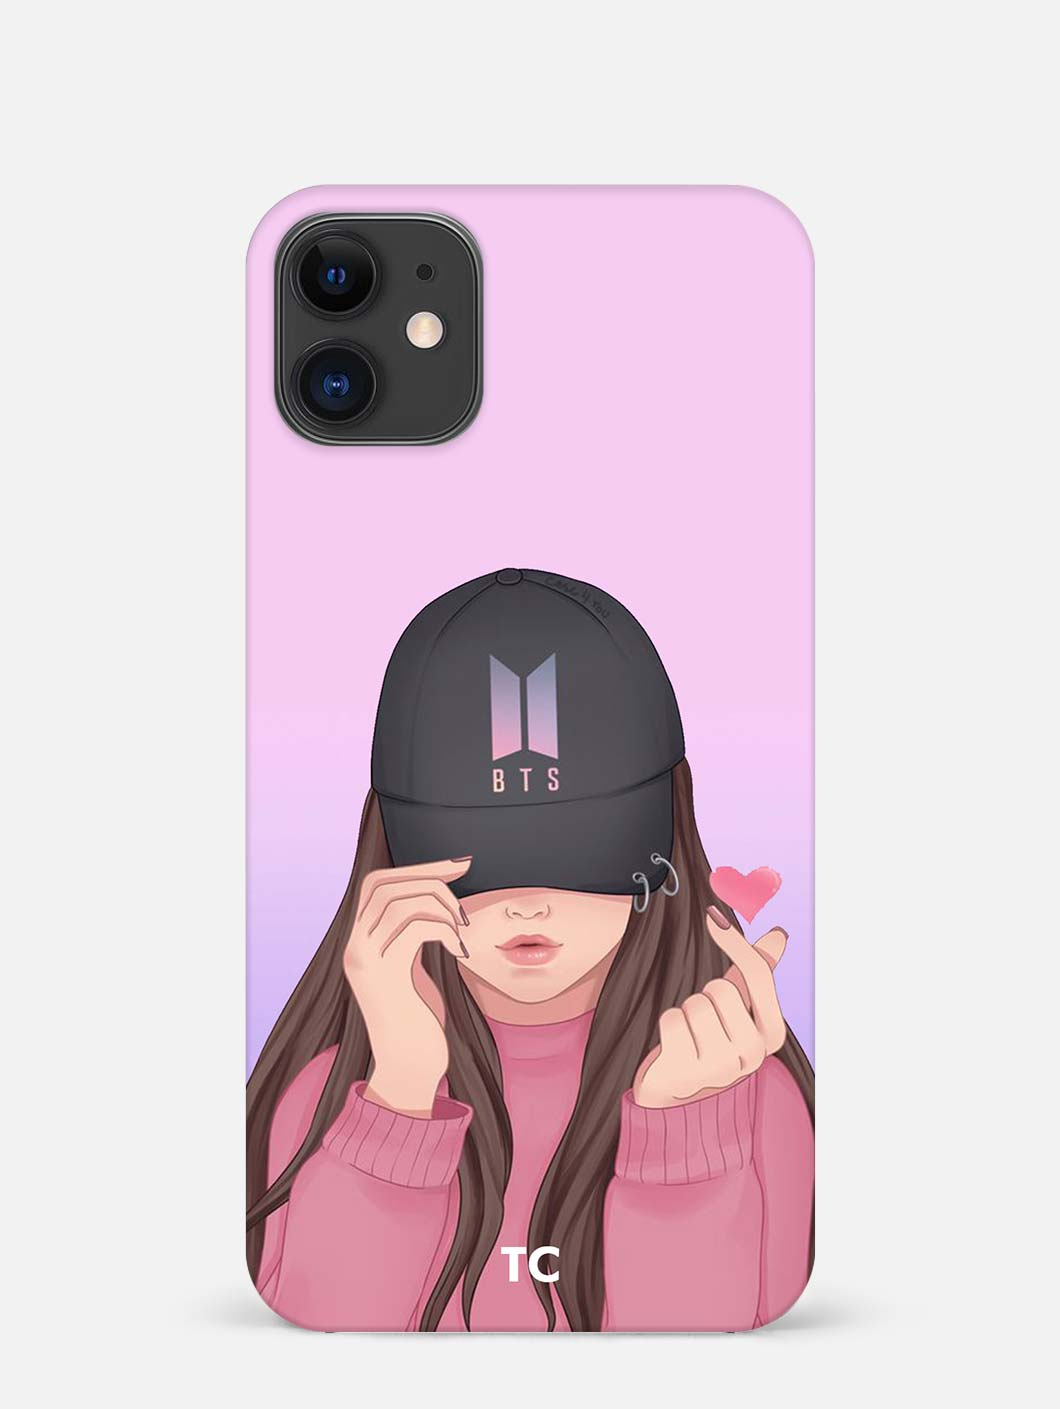 BTS iPhone 12 Mini Mobile Cover